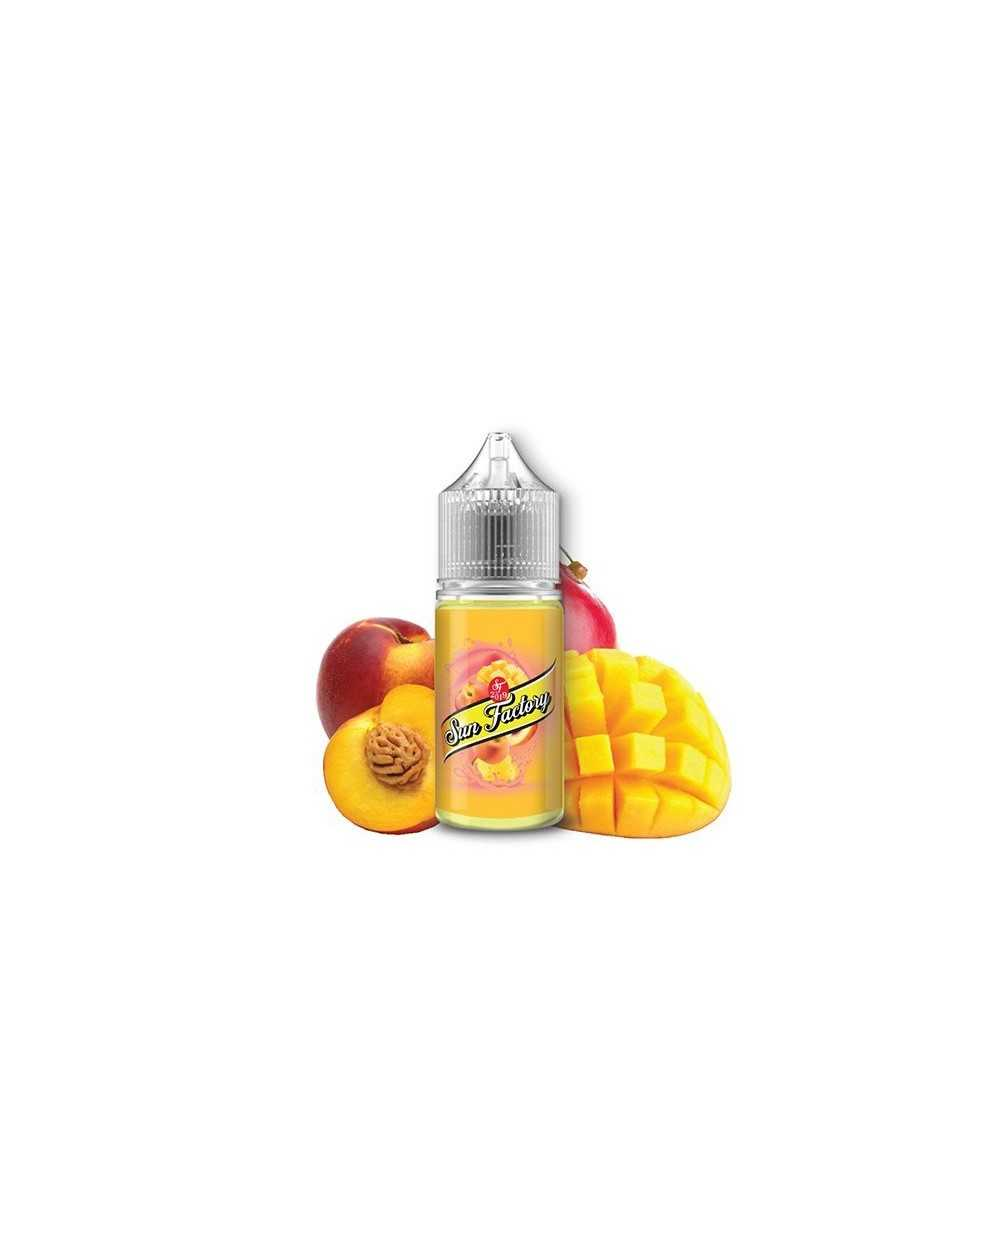 Concentrate Goldy 30ml - Sun Factory by Airomia-1